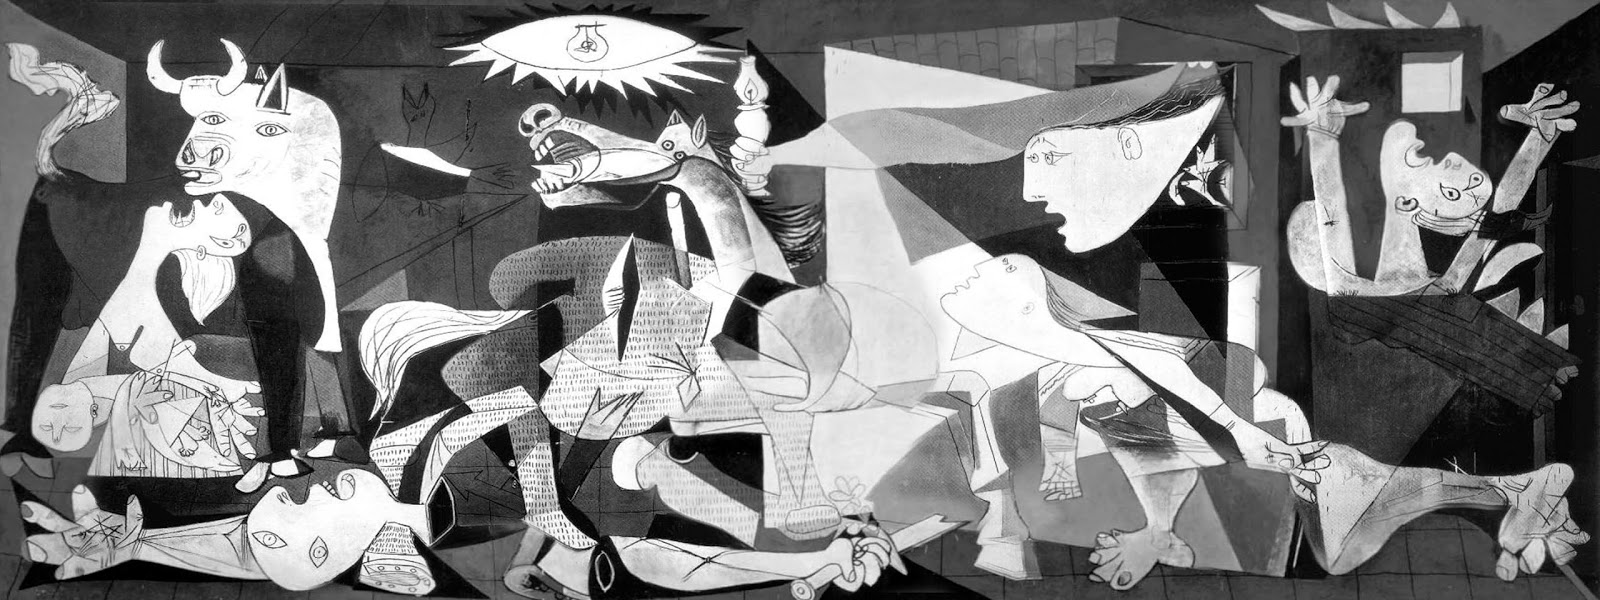 'Guernica' by Pablo Picasso